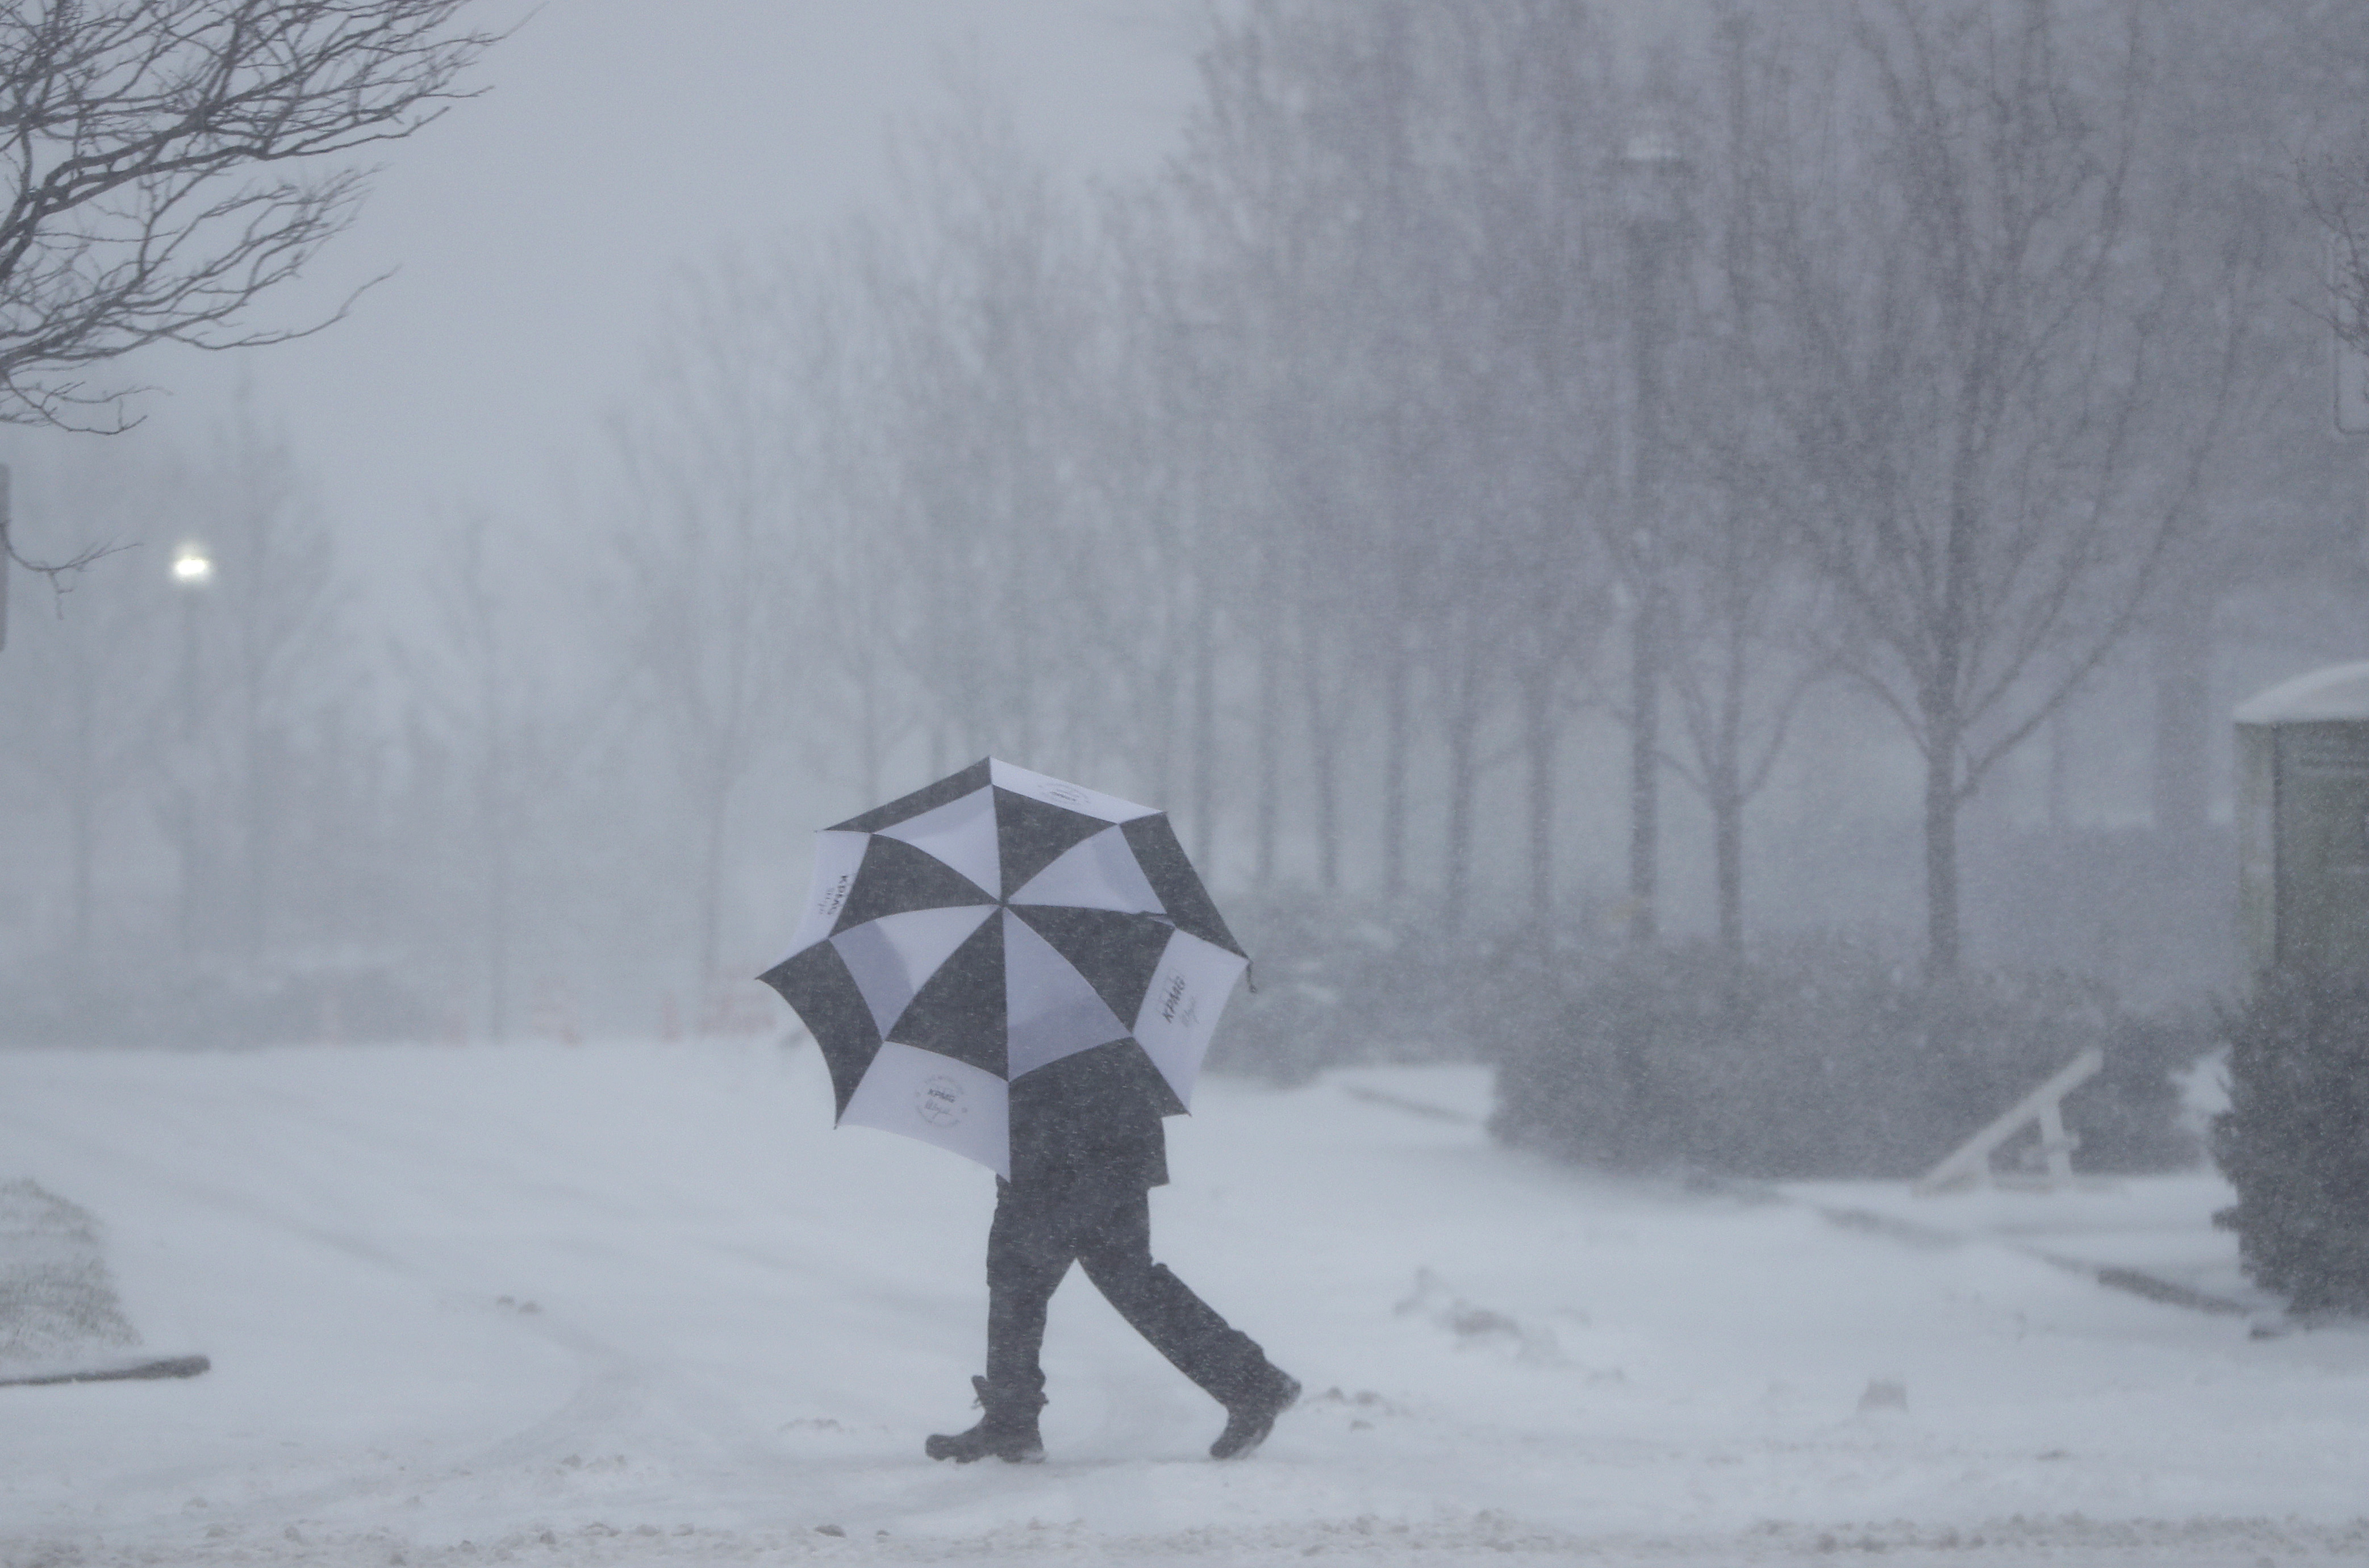 A person shields itself from falling snow with an umbrella in Jersey City, N.J., on Feb. 9, 2017.  (AP Photo/Mark Lennihan)